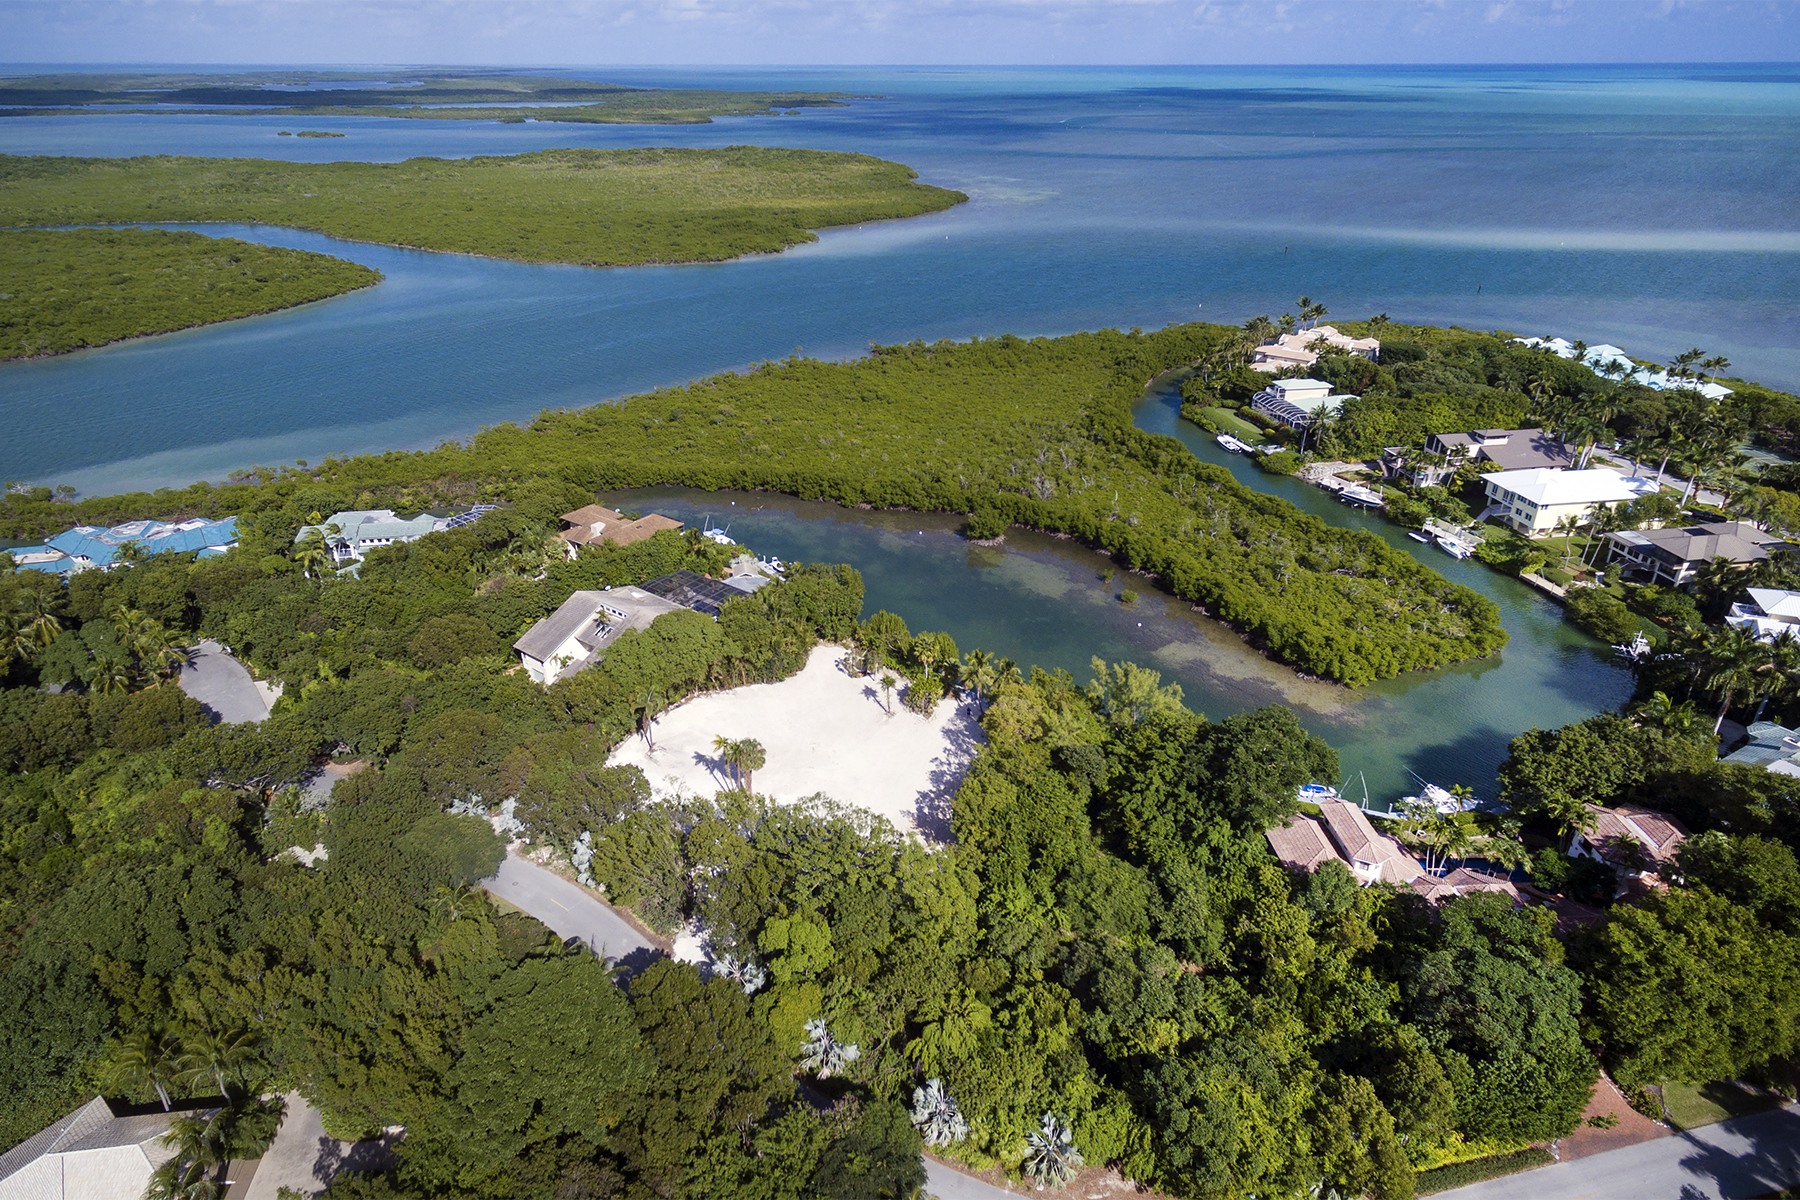 Đất đai vì Bán tại Expansive Location to Build Your Dream Home at Ocean Reef 40-42 Cardinal Lane Ocean Reef Community, Key Largo, Florida, 33037 Hoa Kỳ